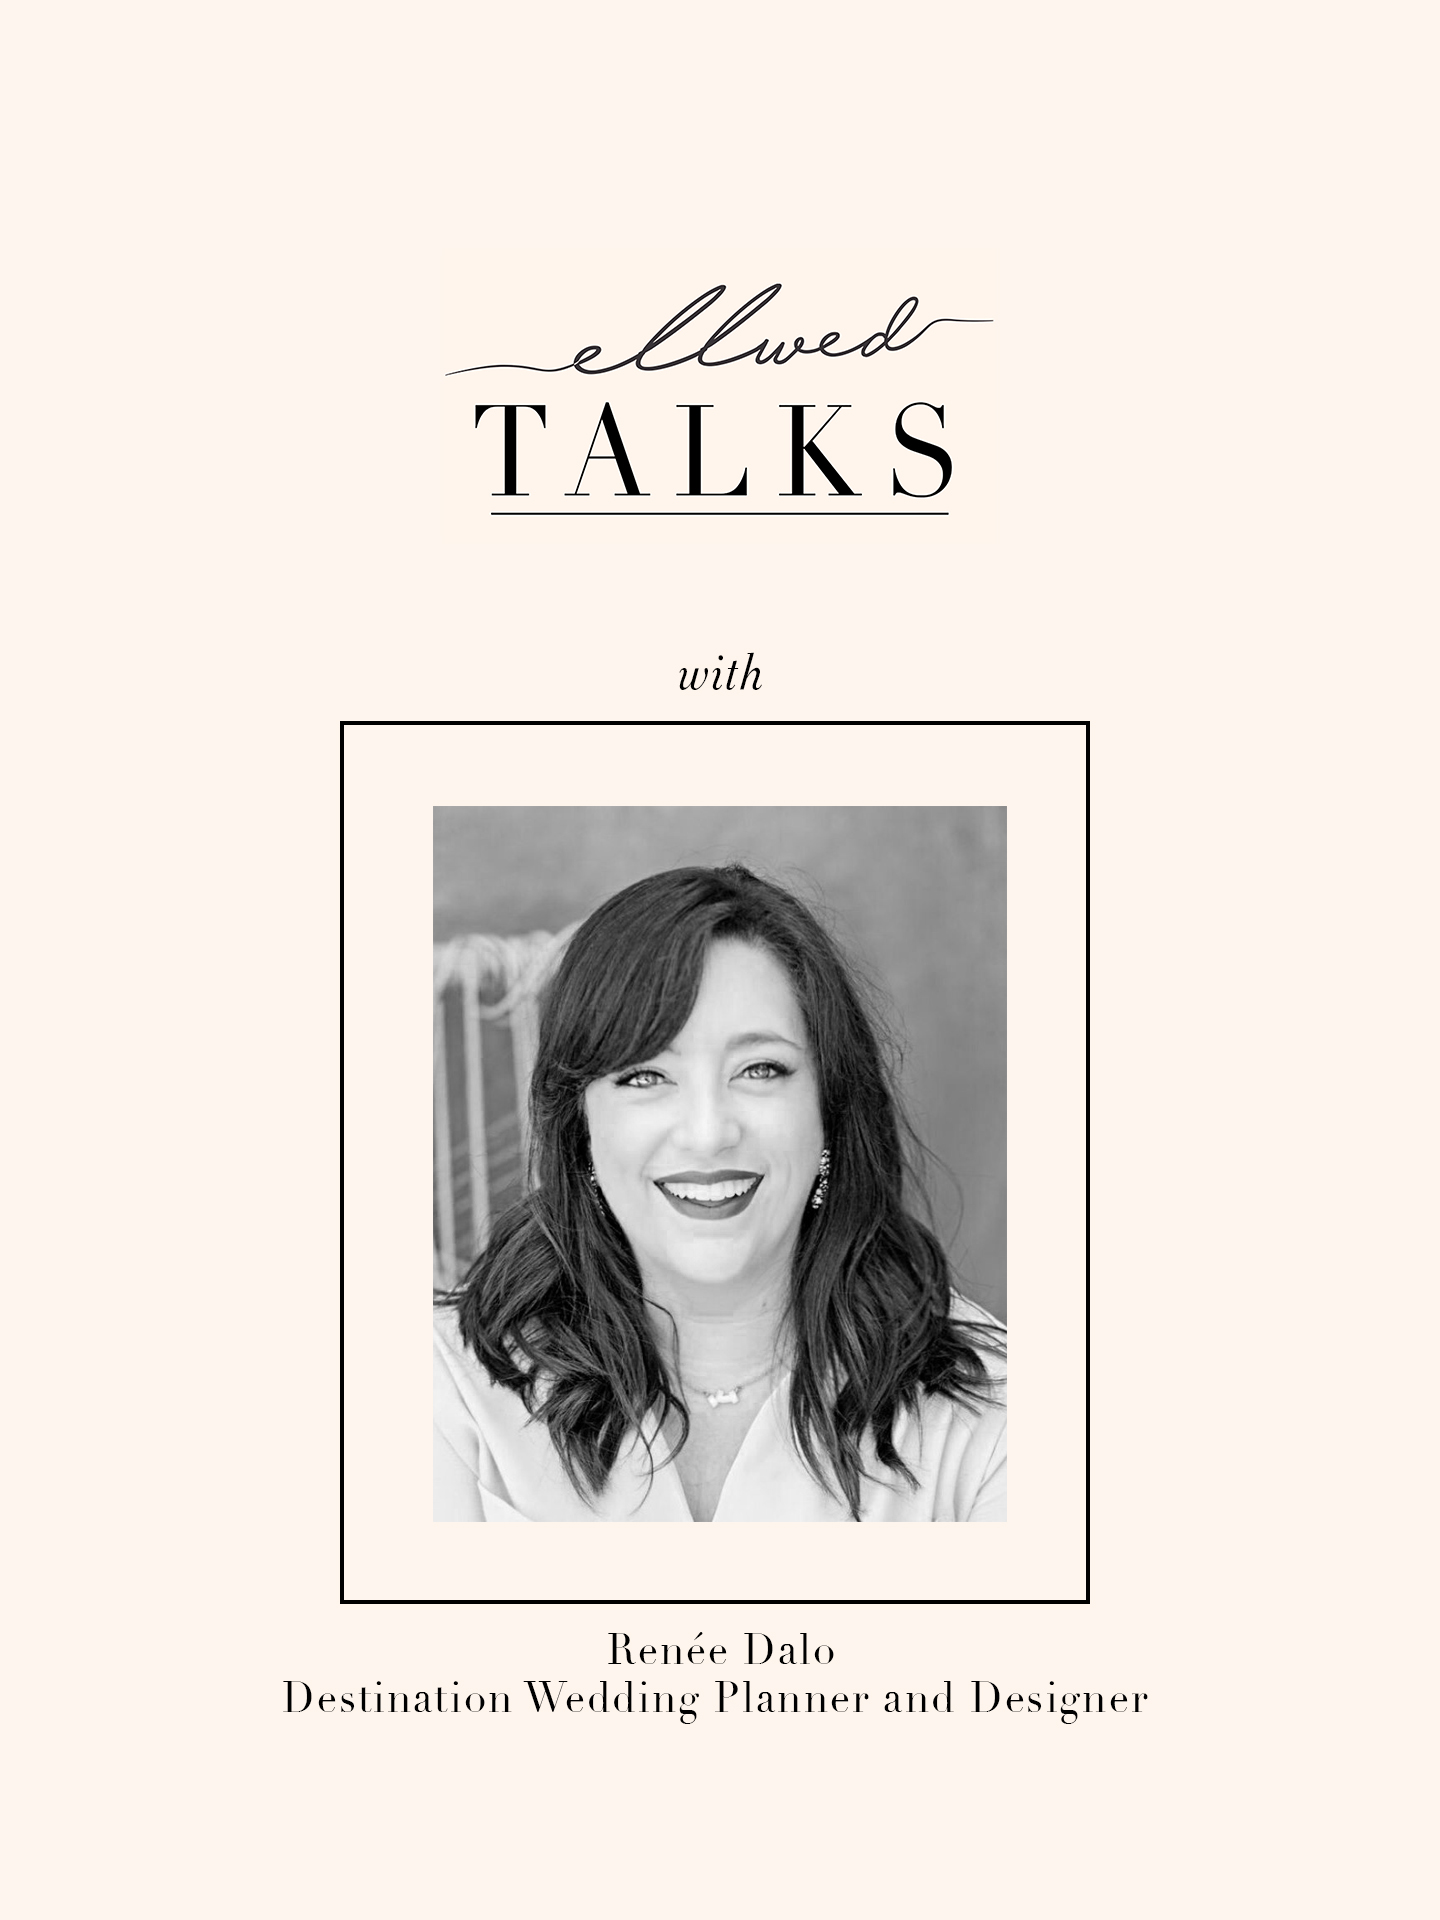 Ellwed Talks with Renee Dalo about Things Everyone Forgets to Plan for Their Wedding Day